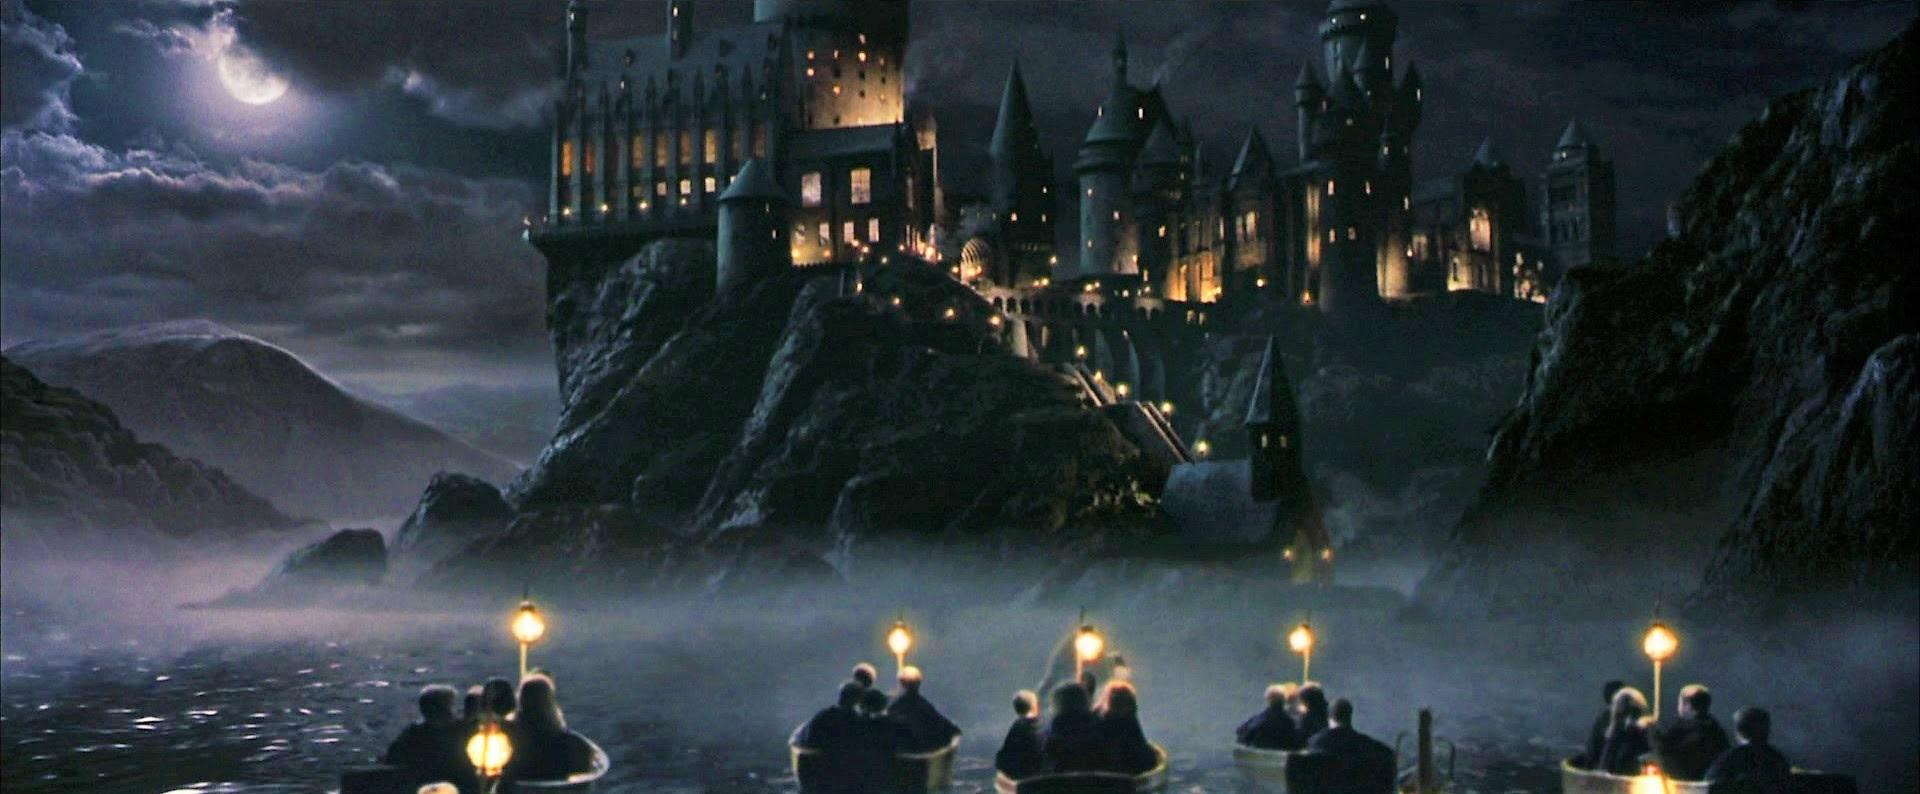 http://img3.wikia.nocookie.net/__cb20090509160456/harrypotter/images/e/ed/Hogwarts_boats_1.jpg